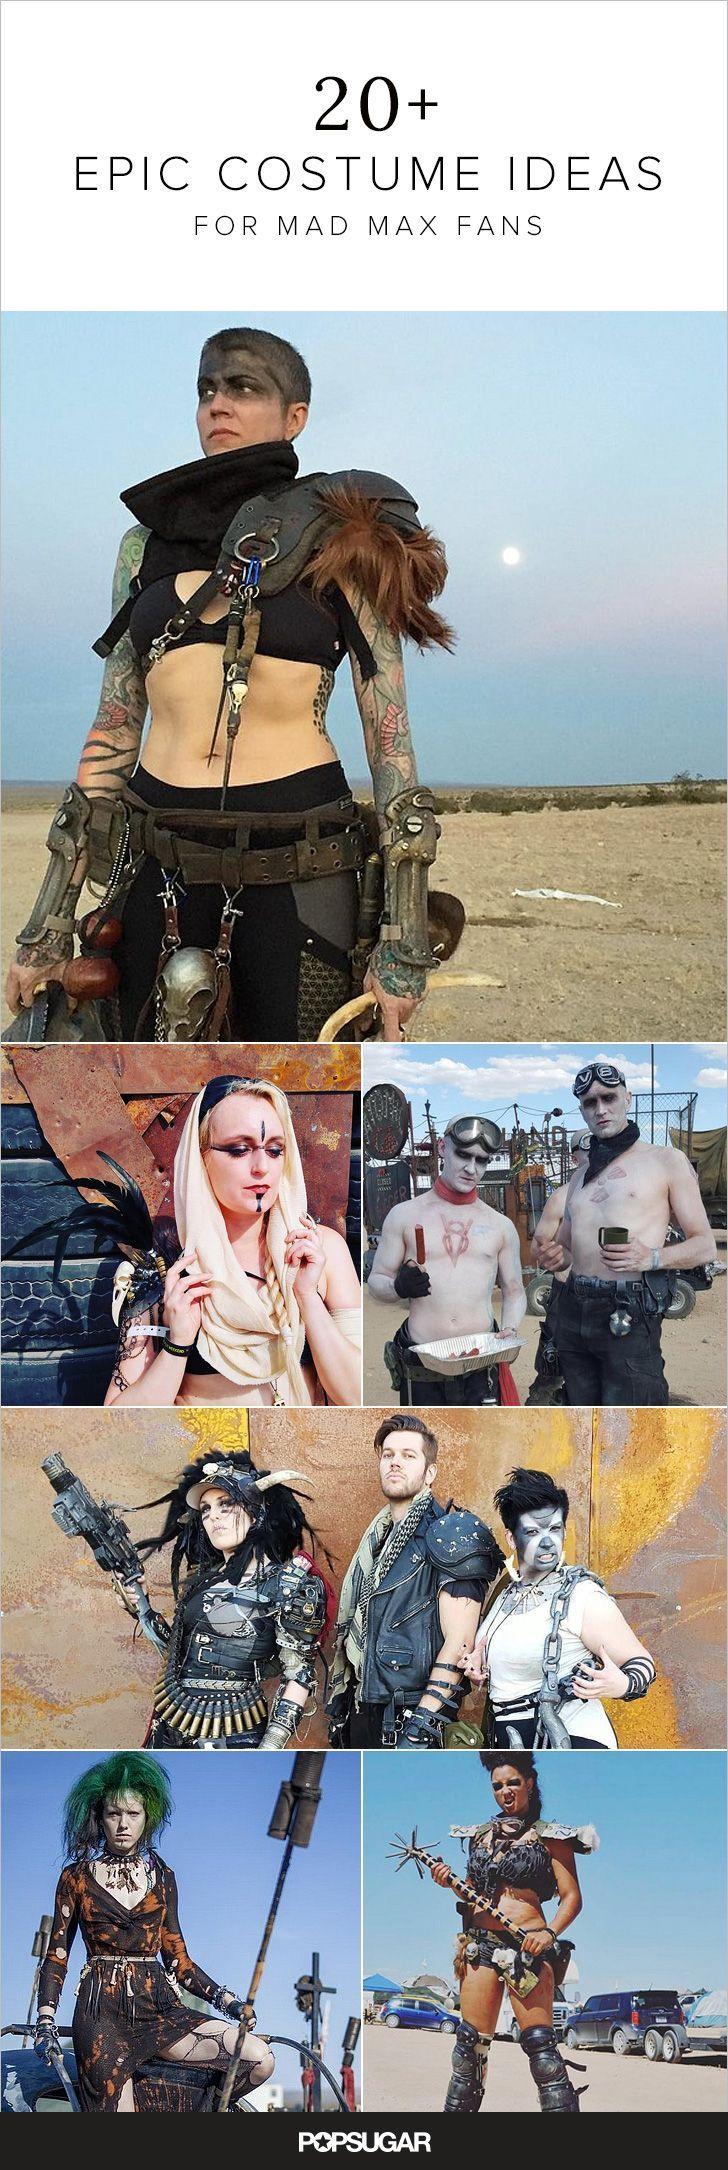 Go all out for Halloween with these amazing Mad Max costumes